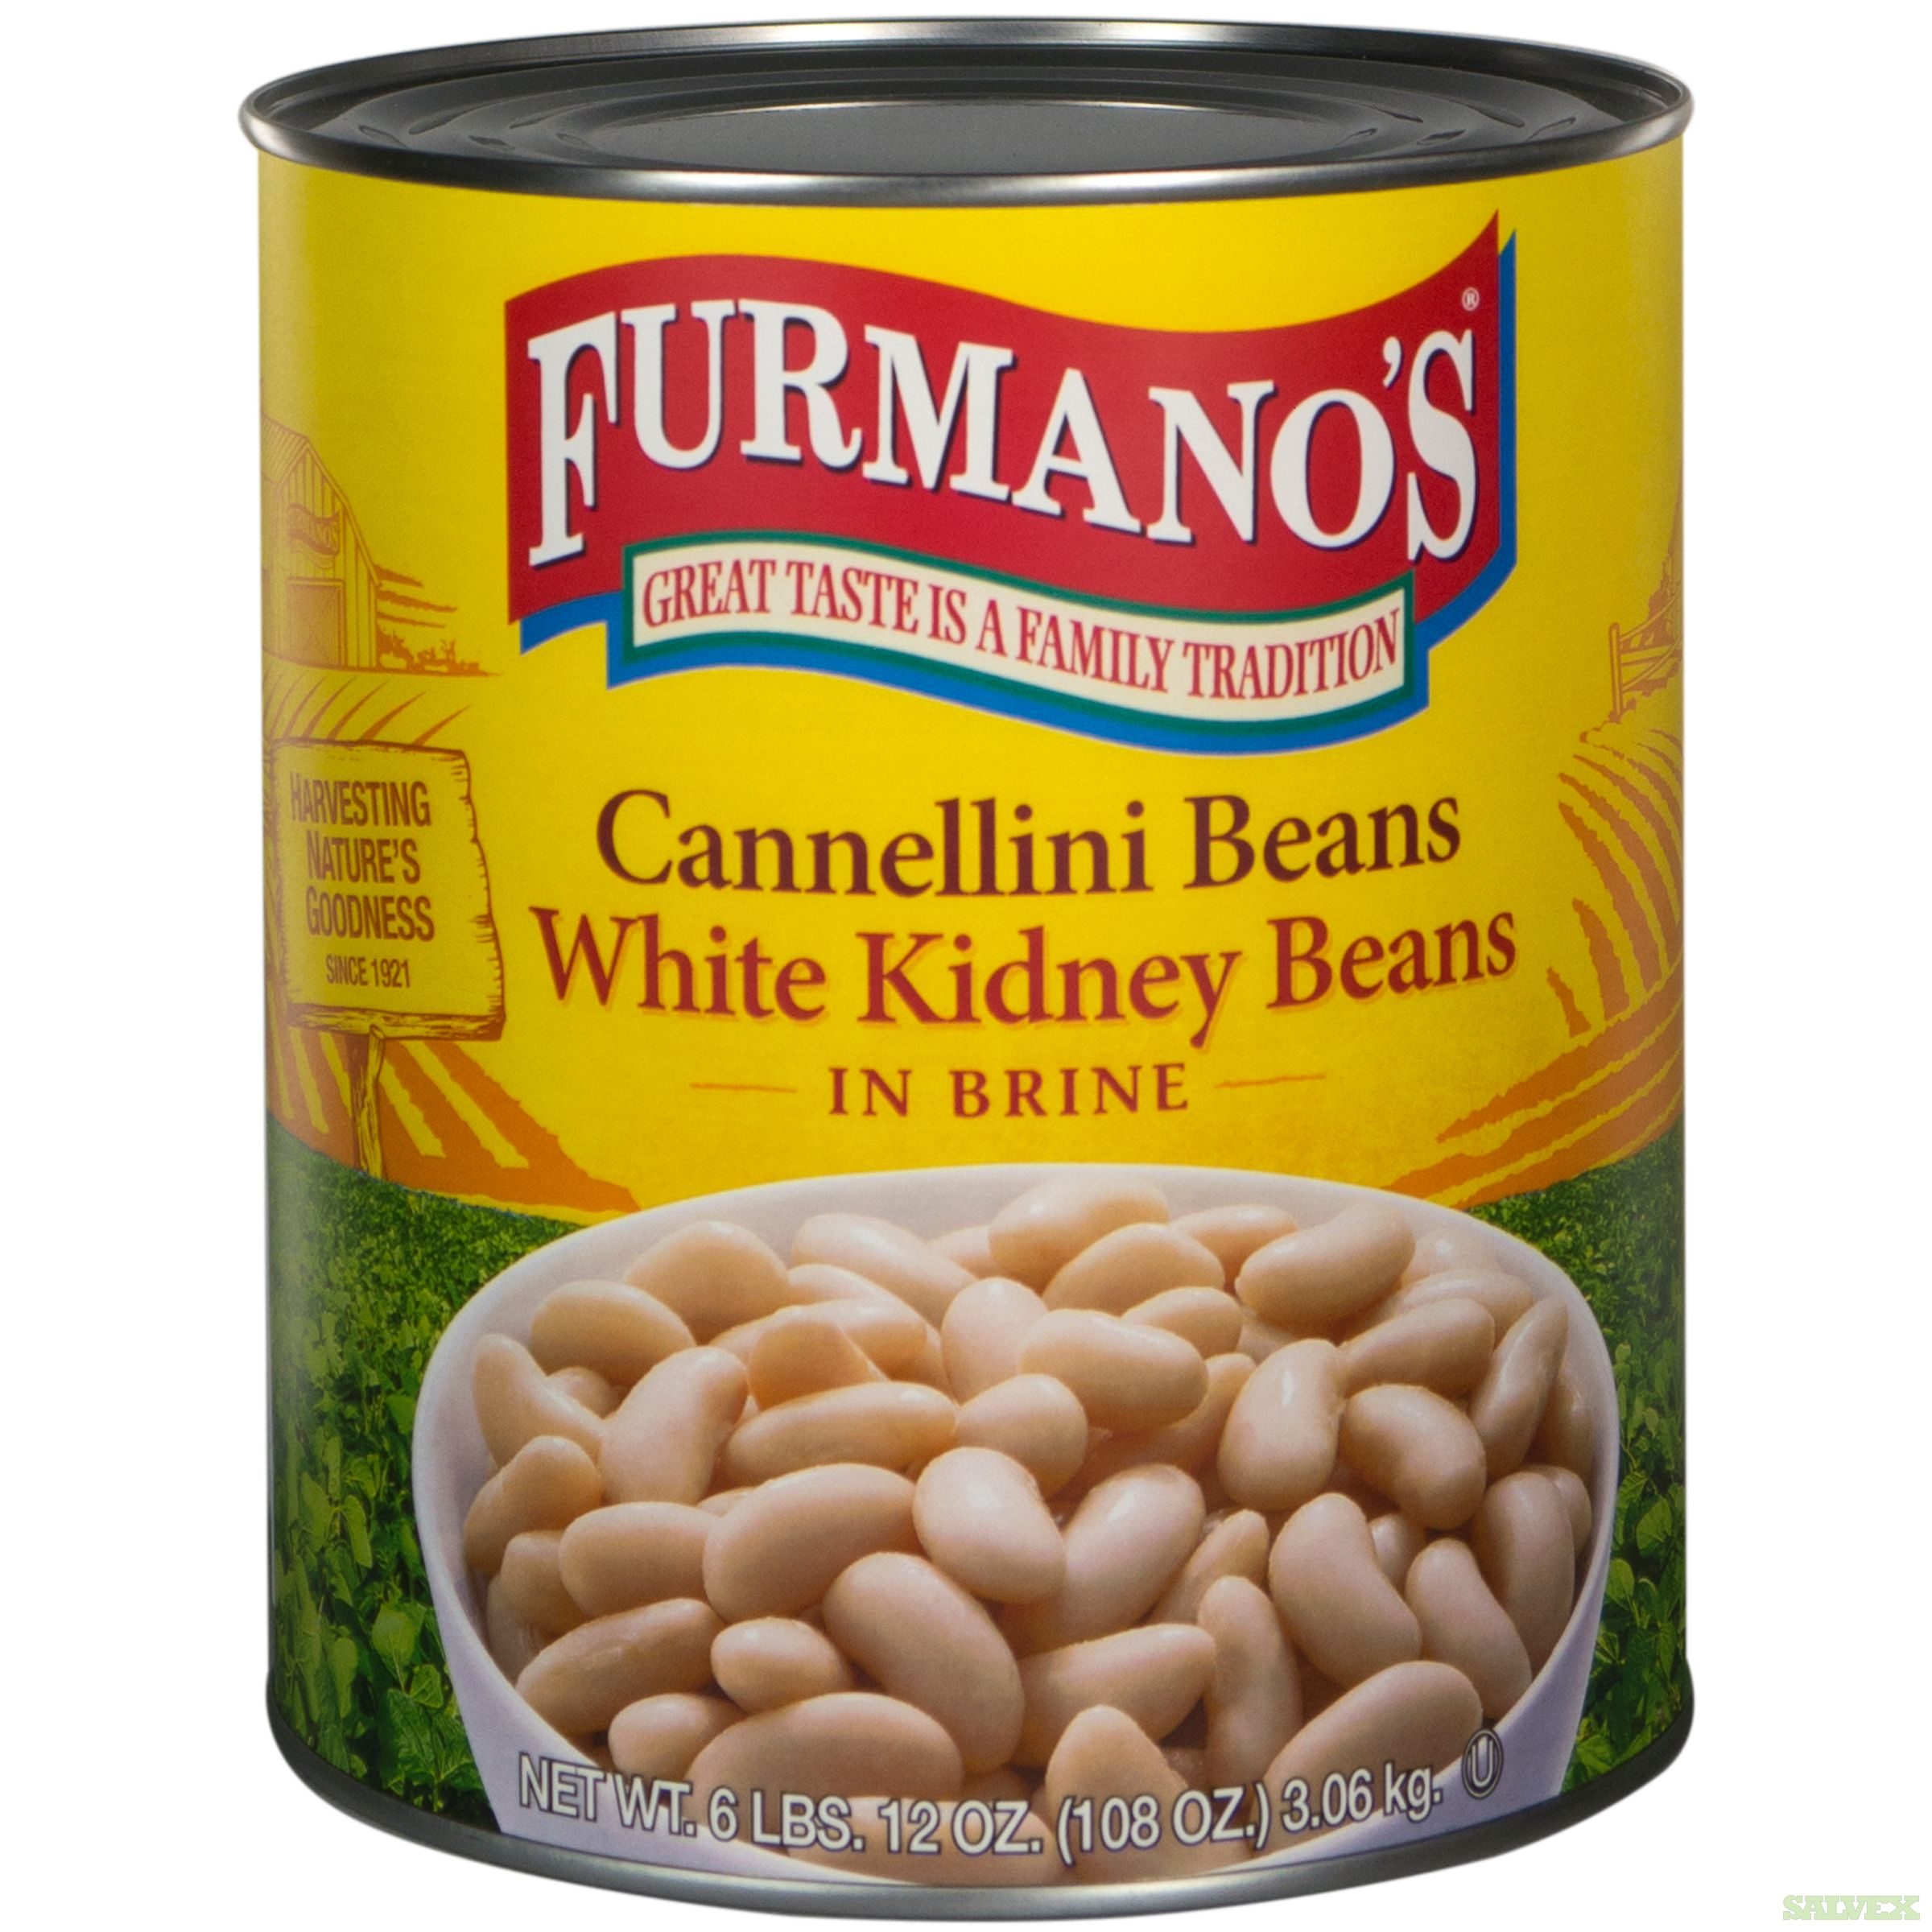 Wax Beans, Furmano Great Northern Beans, Furmano Seasoned Black Beans, Country Style Baked Beans, Furmano White Kidney (cannellini) Beans (1,651 Cases)